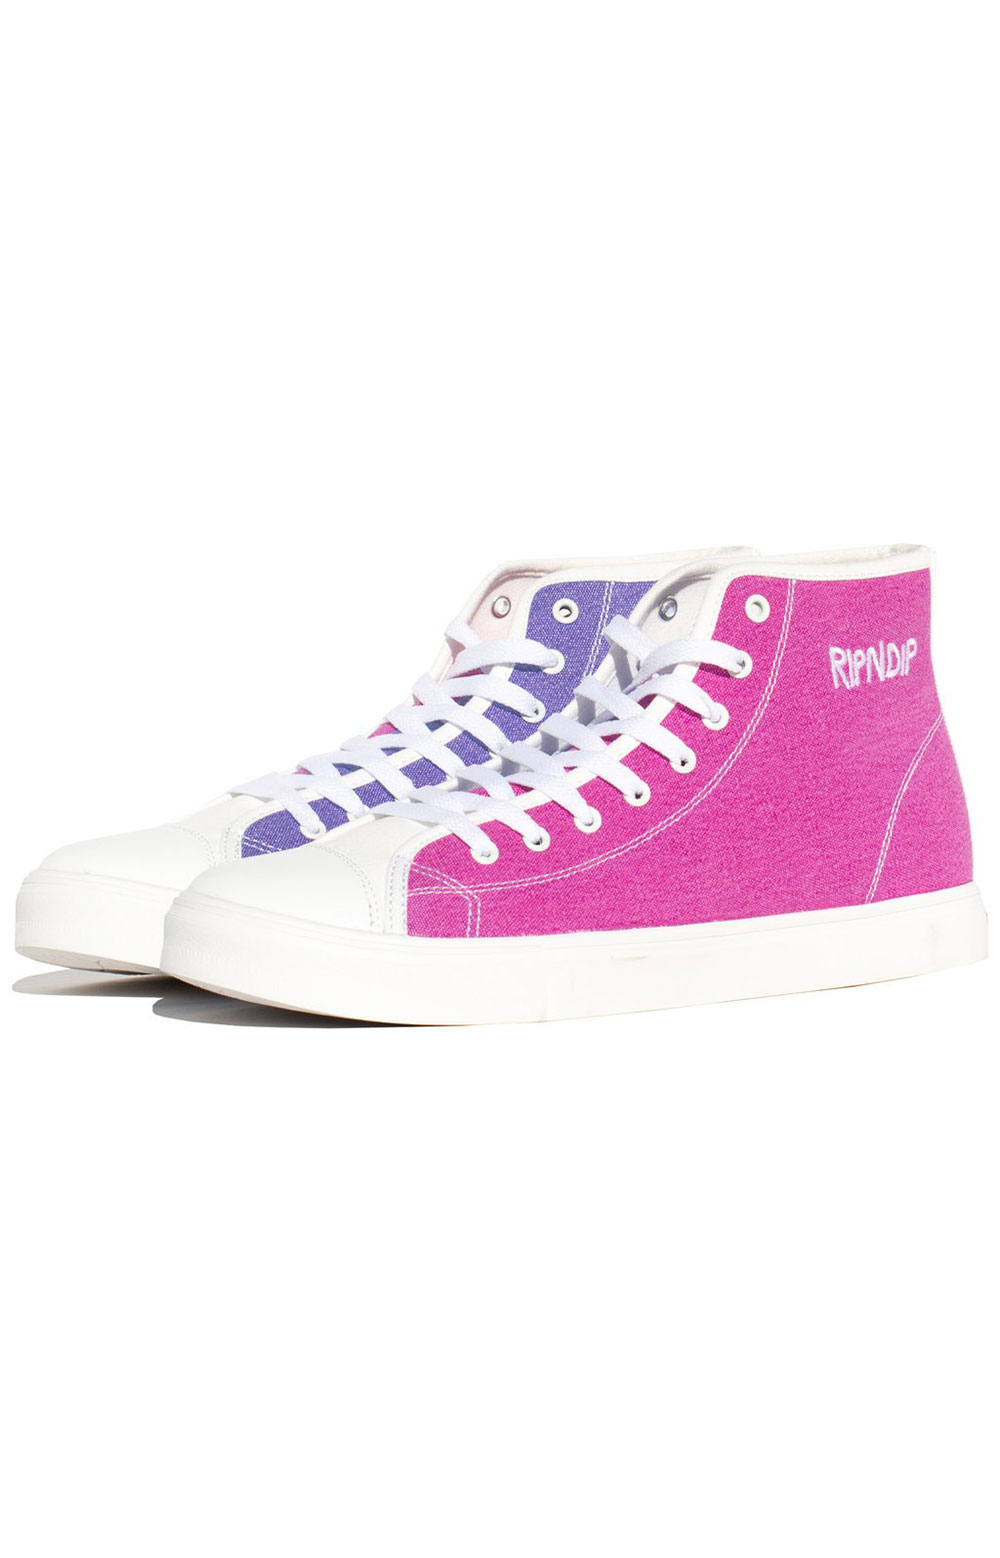 Lord Nermal UV Activated High Tops - Blue/Fuschia  2